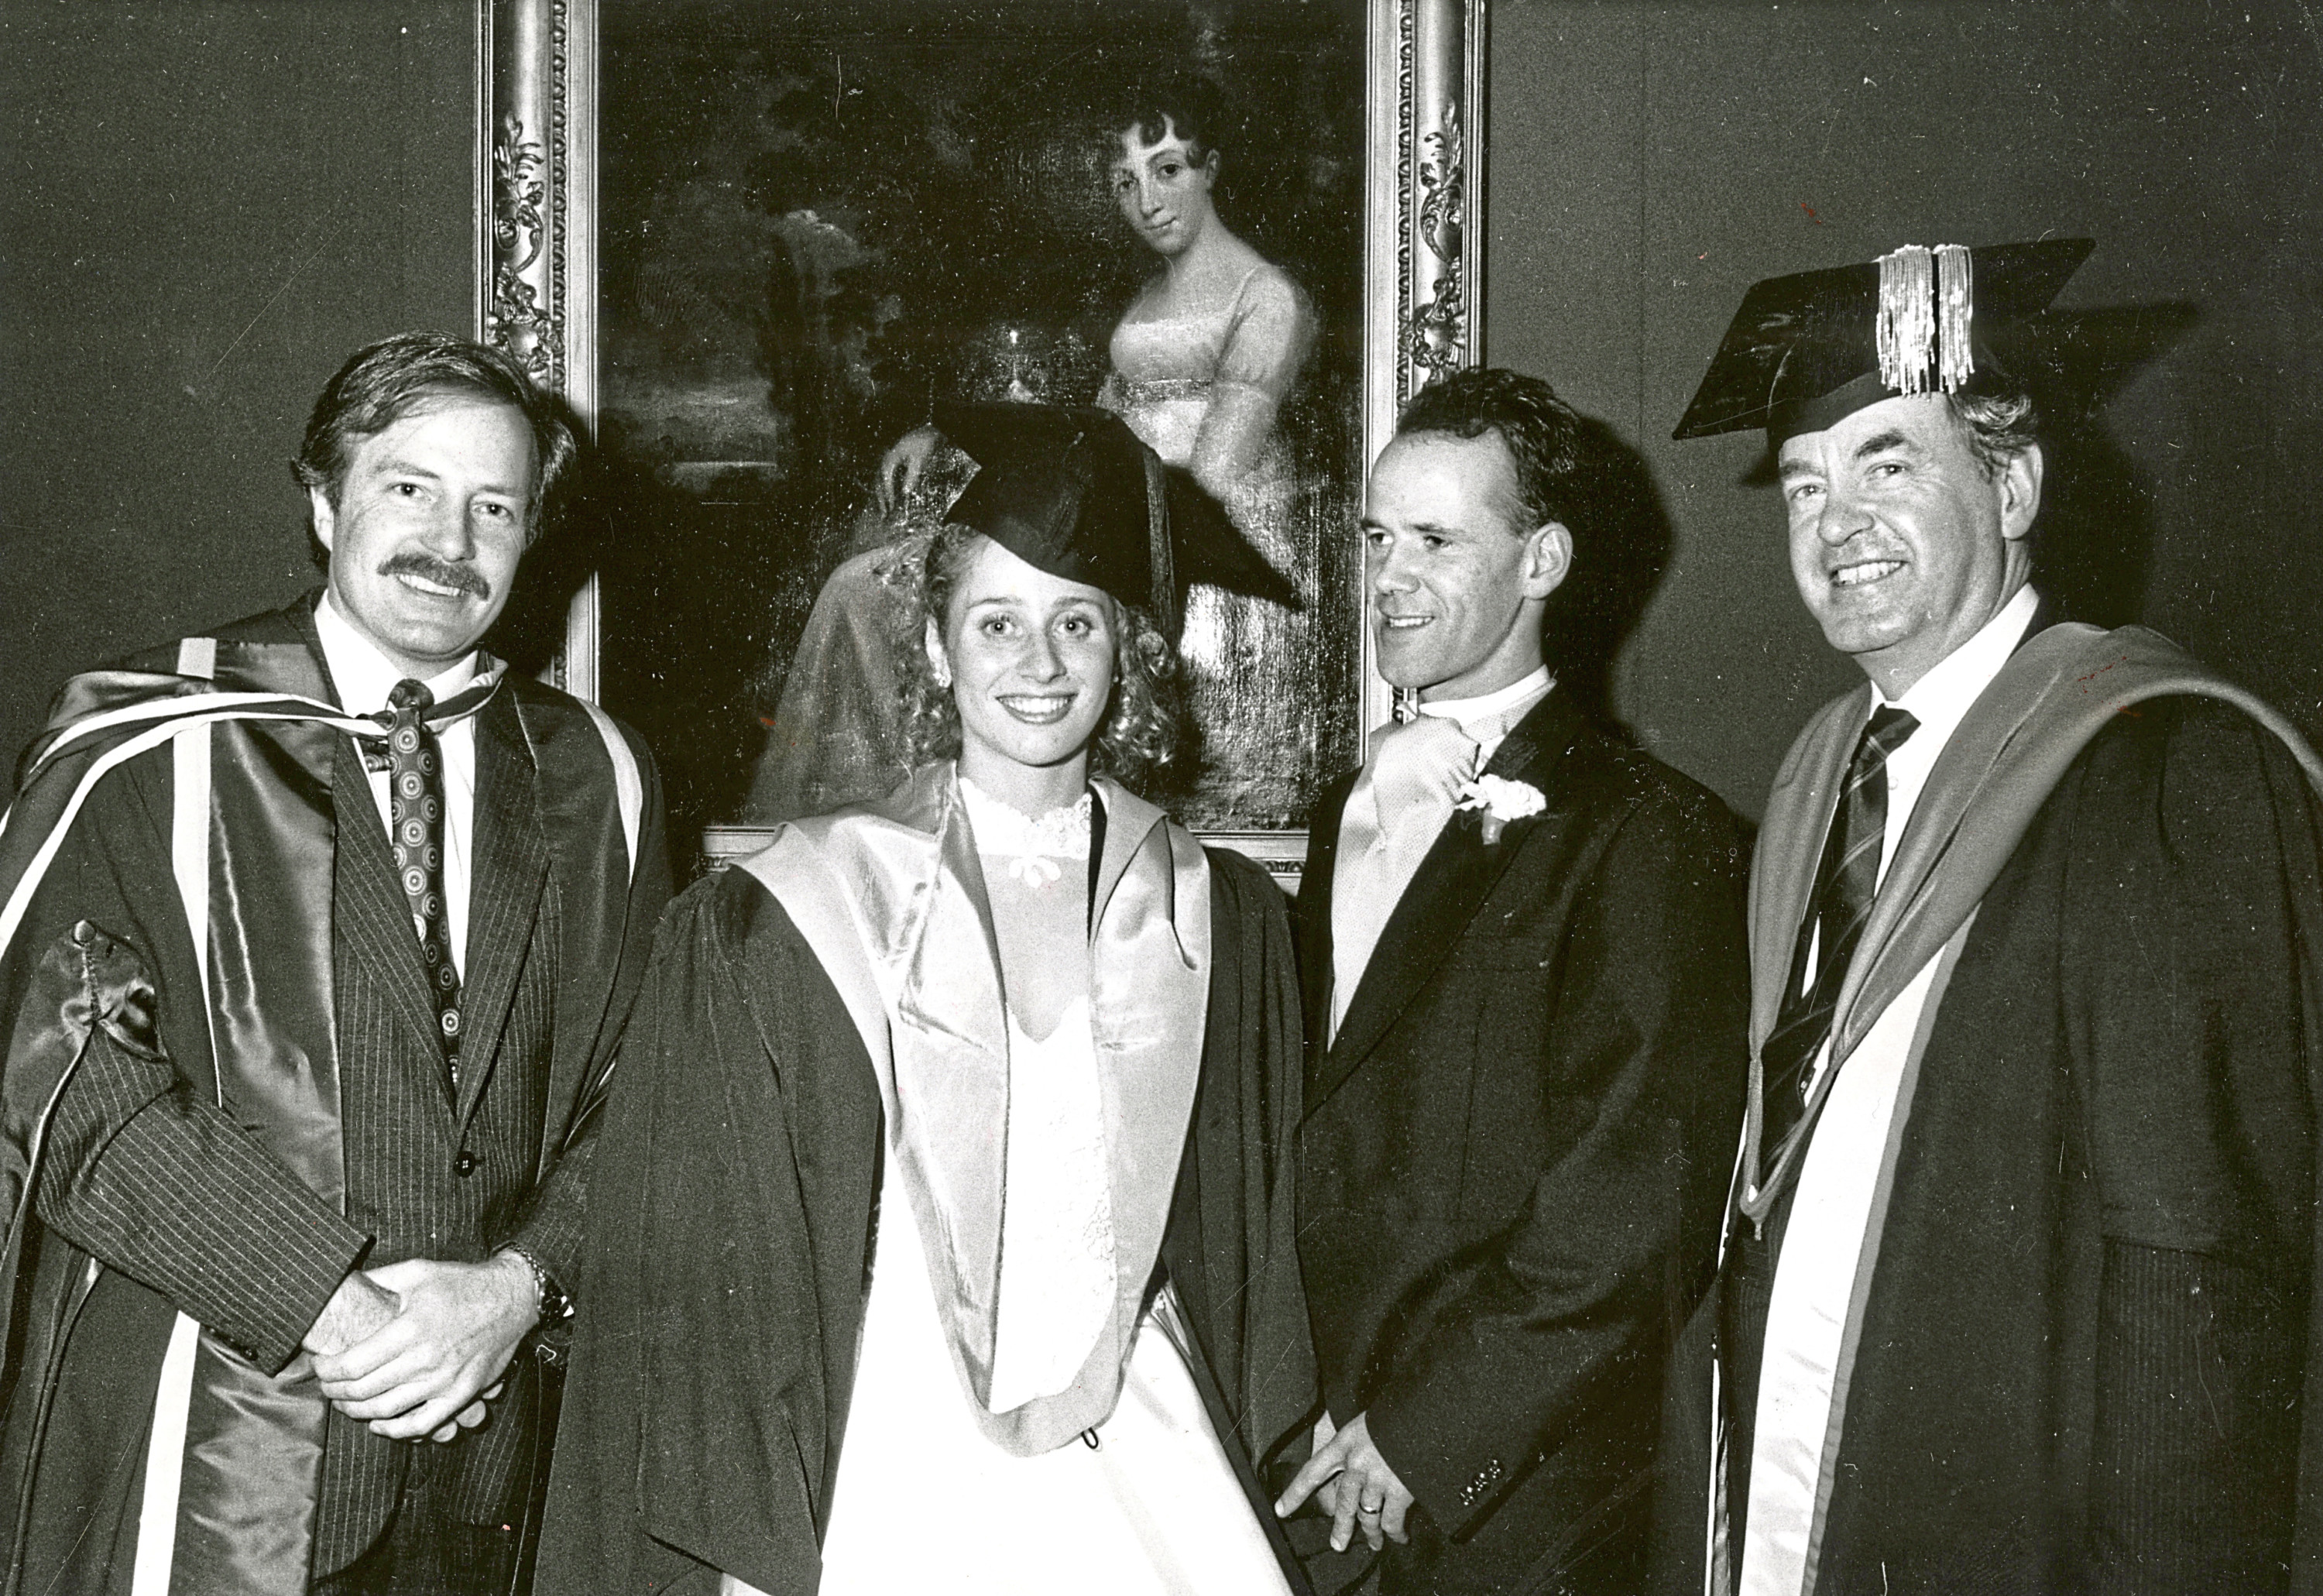 1990: Dawn Masson married honours student Mark Hearns at King's College and was surprised after the ceremony with a special graduation